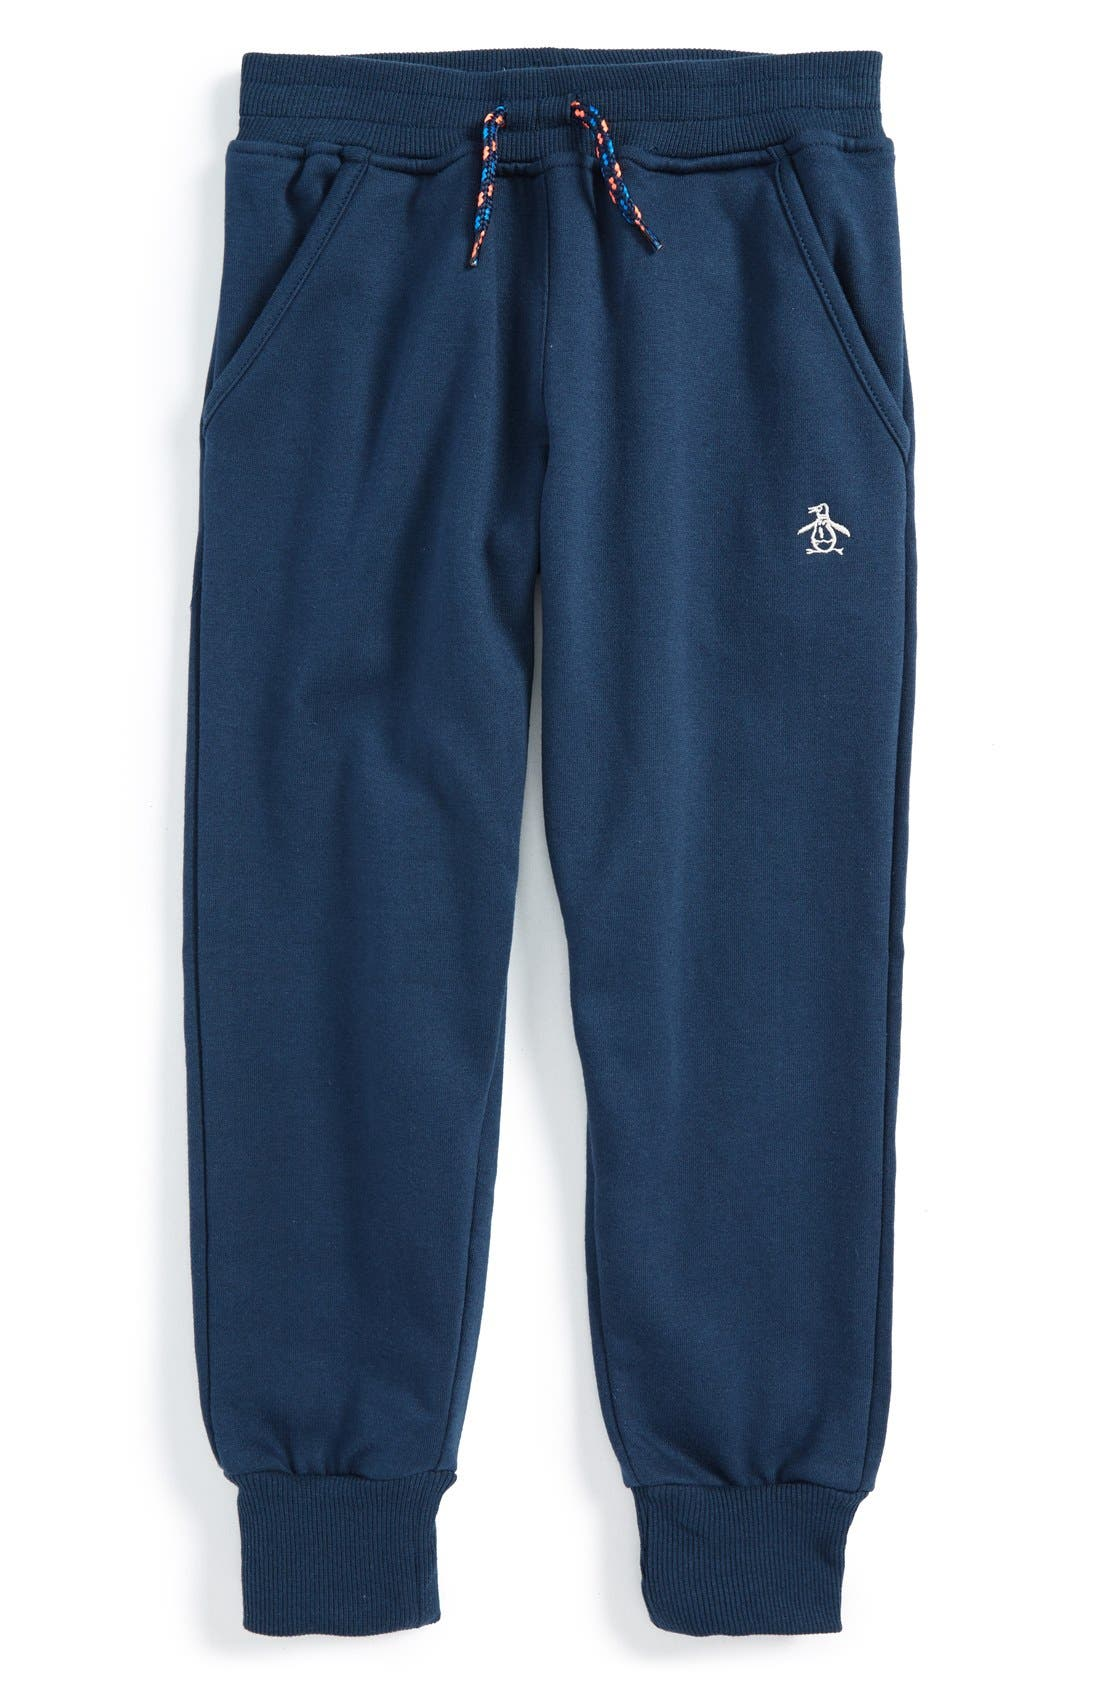 Alternate Image 1 Selected - Original Penguin Jogger Sweatpants (Little Boys)